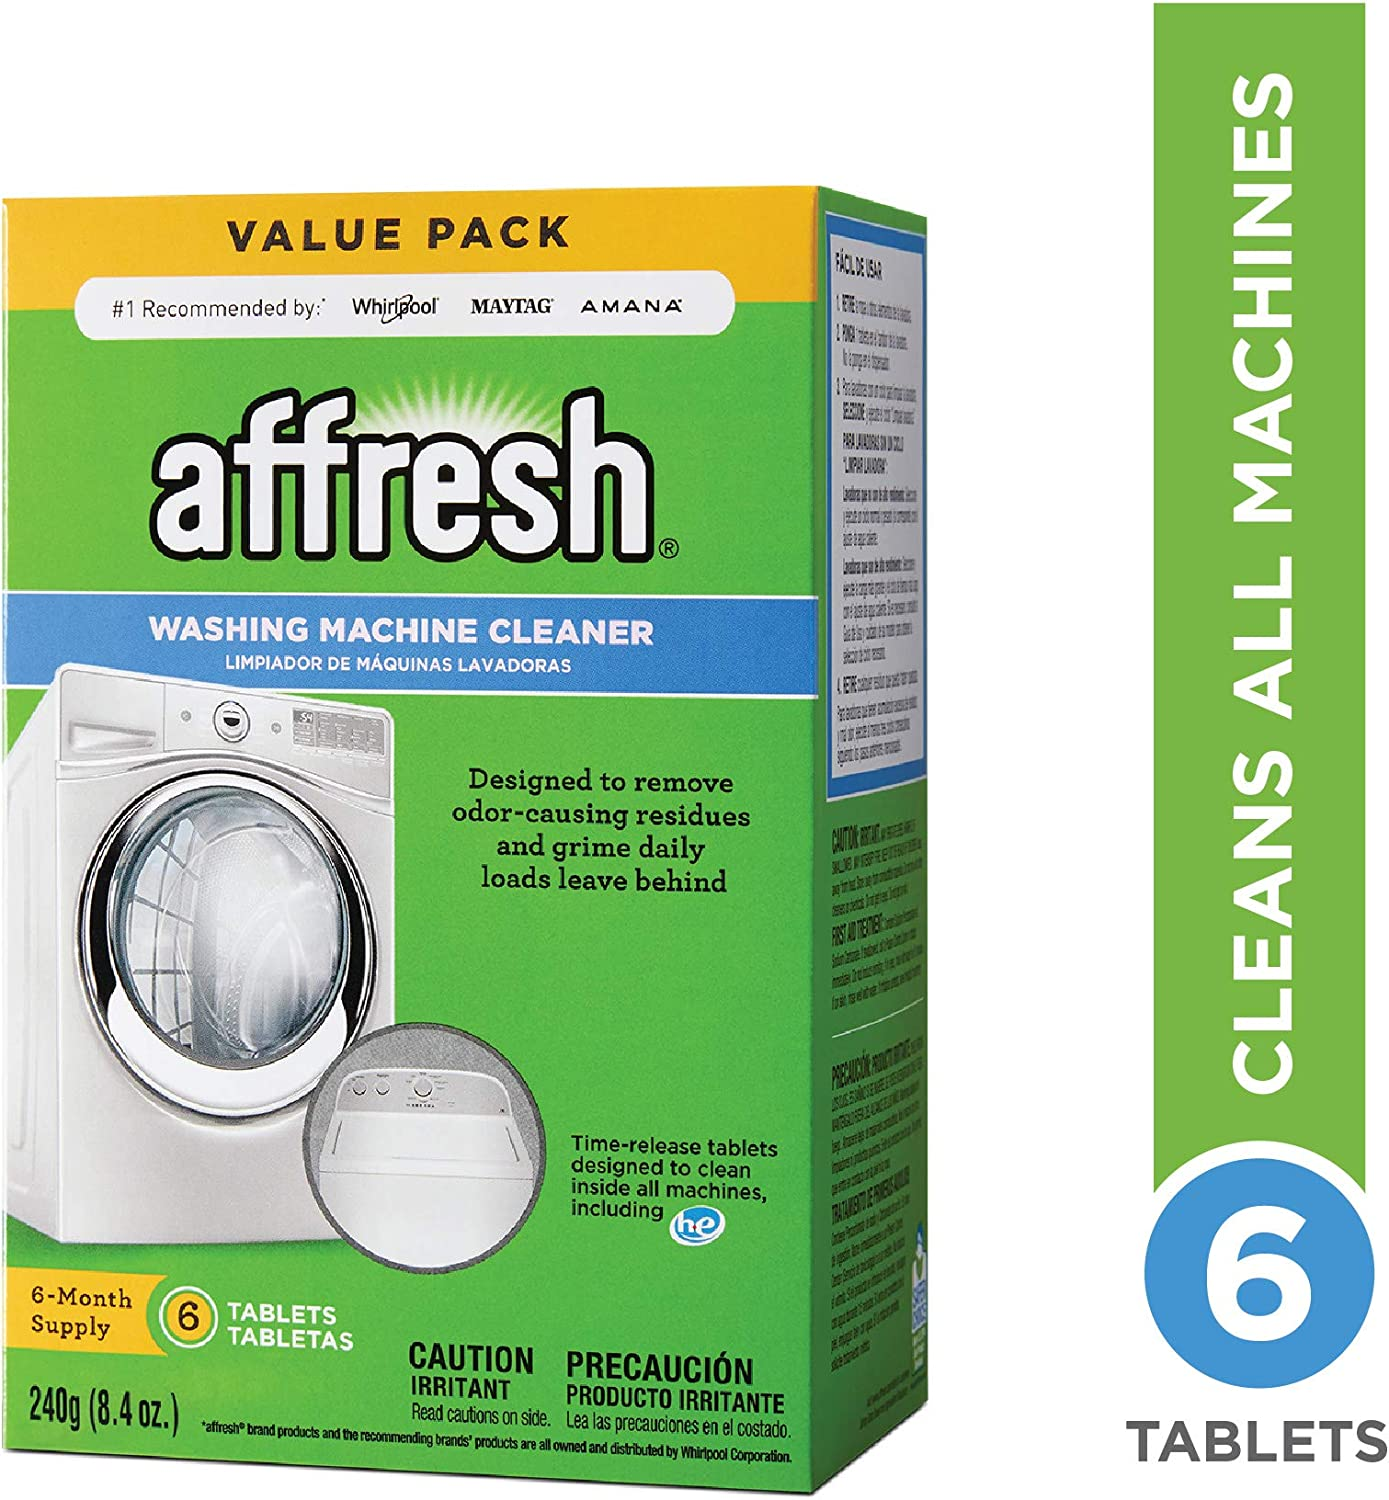 Affresh Washer Machine Cleaner 8.4 Max 82% OFF 6-Tablets New life oz